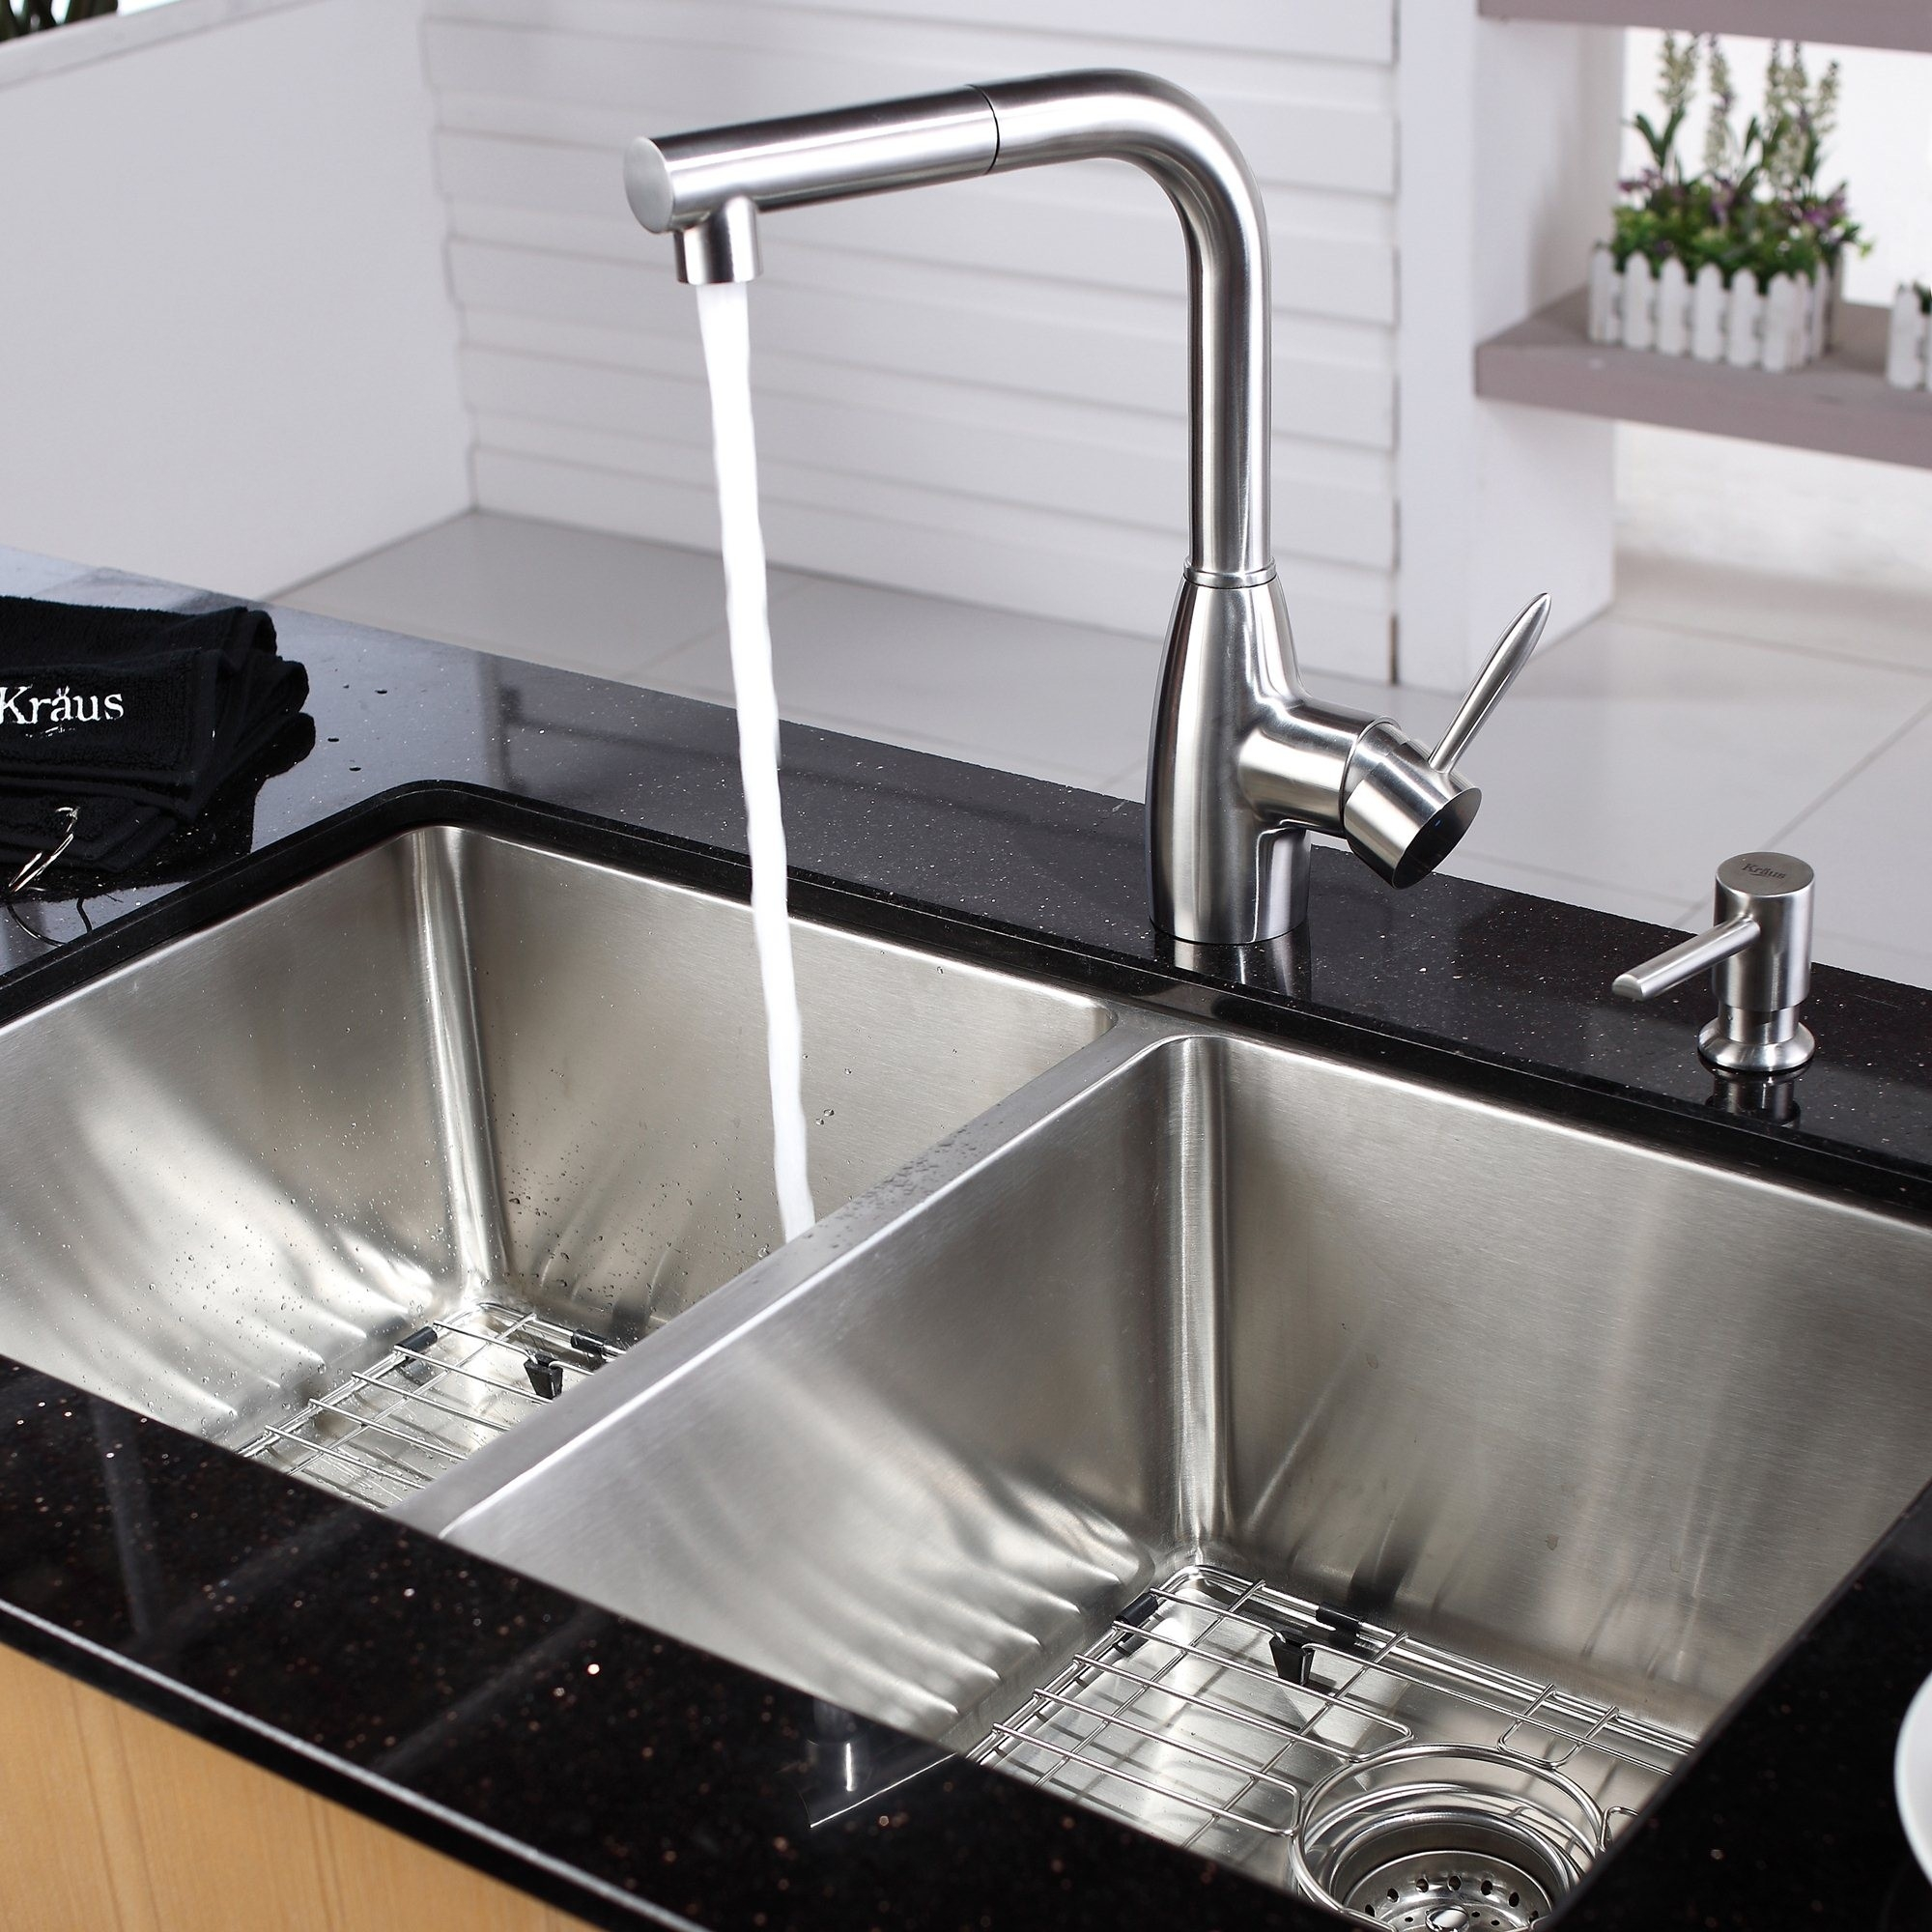 Ideas, stainless steel kitchen sink combination kraususa intended for size 2000 x 2000  .